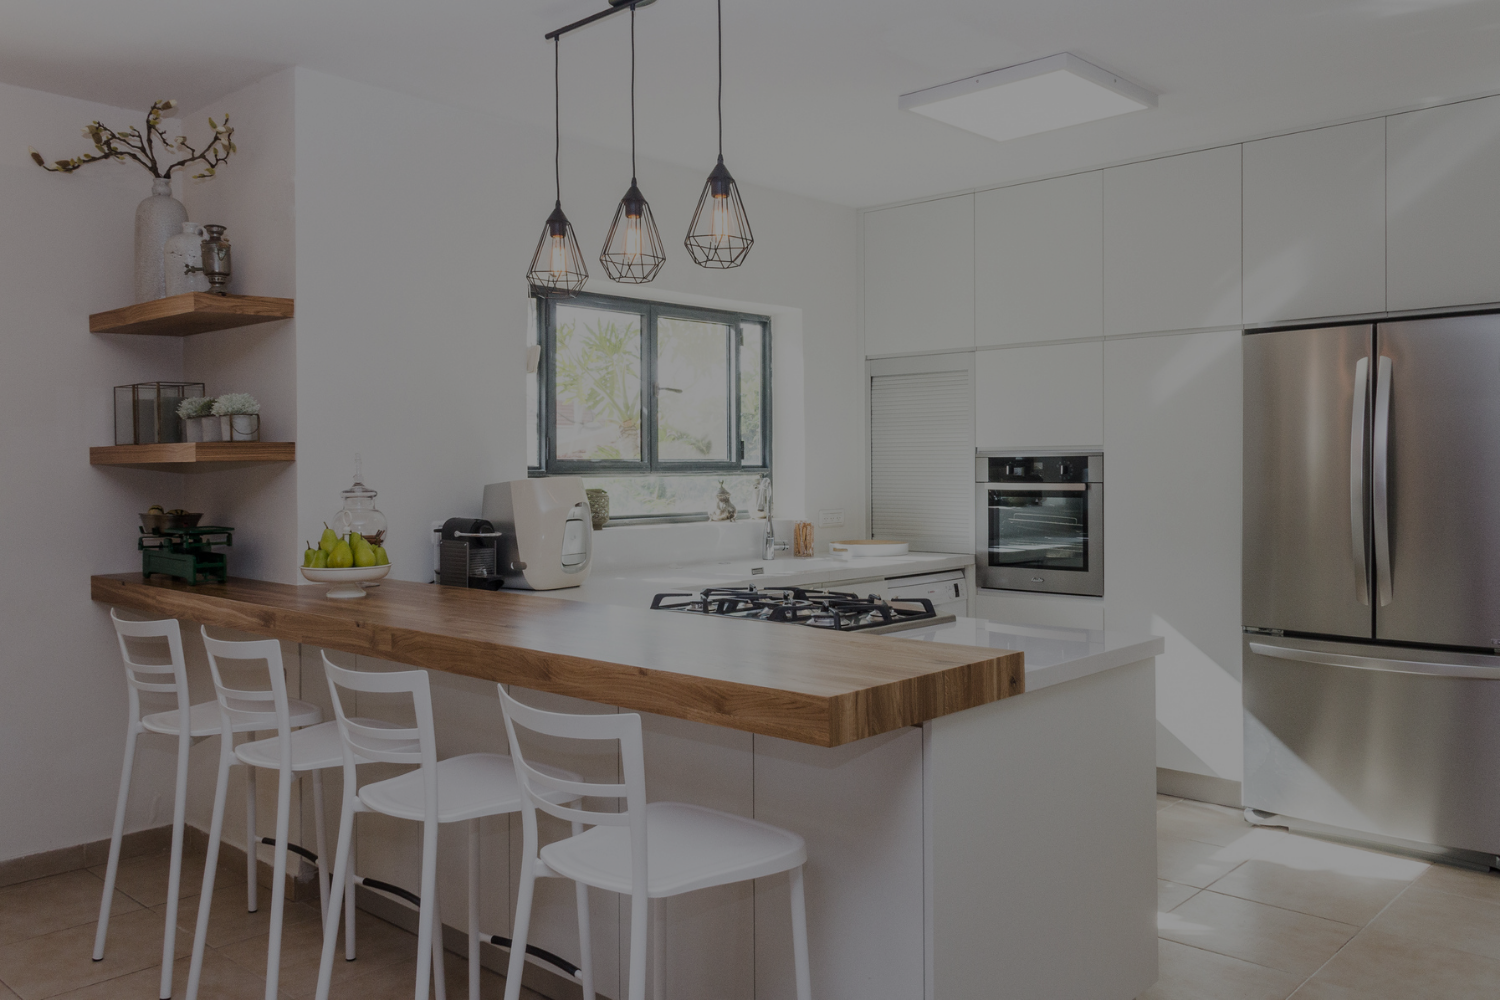 10 Ways to Make a Small Kitchen Feel Larger